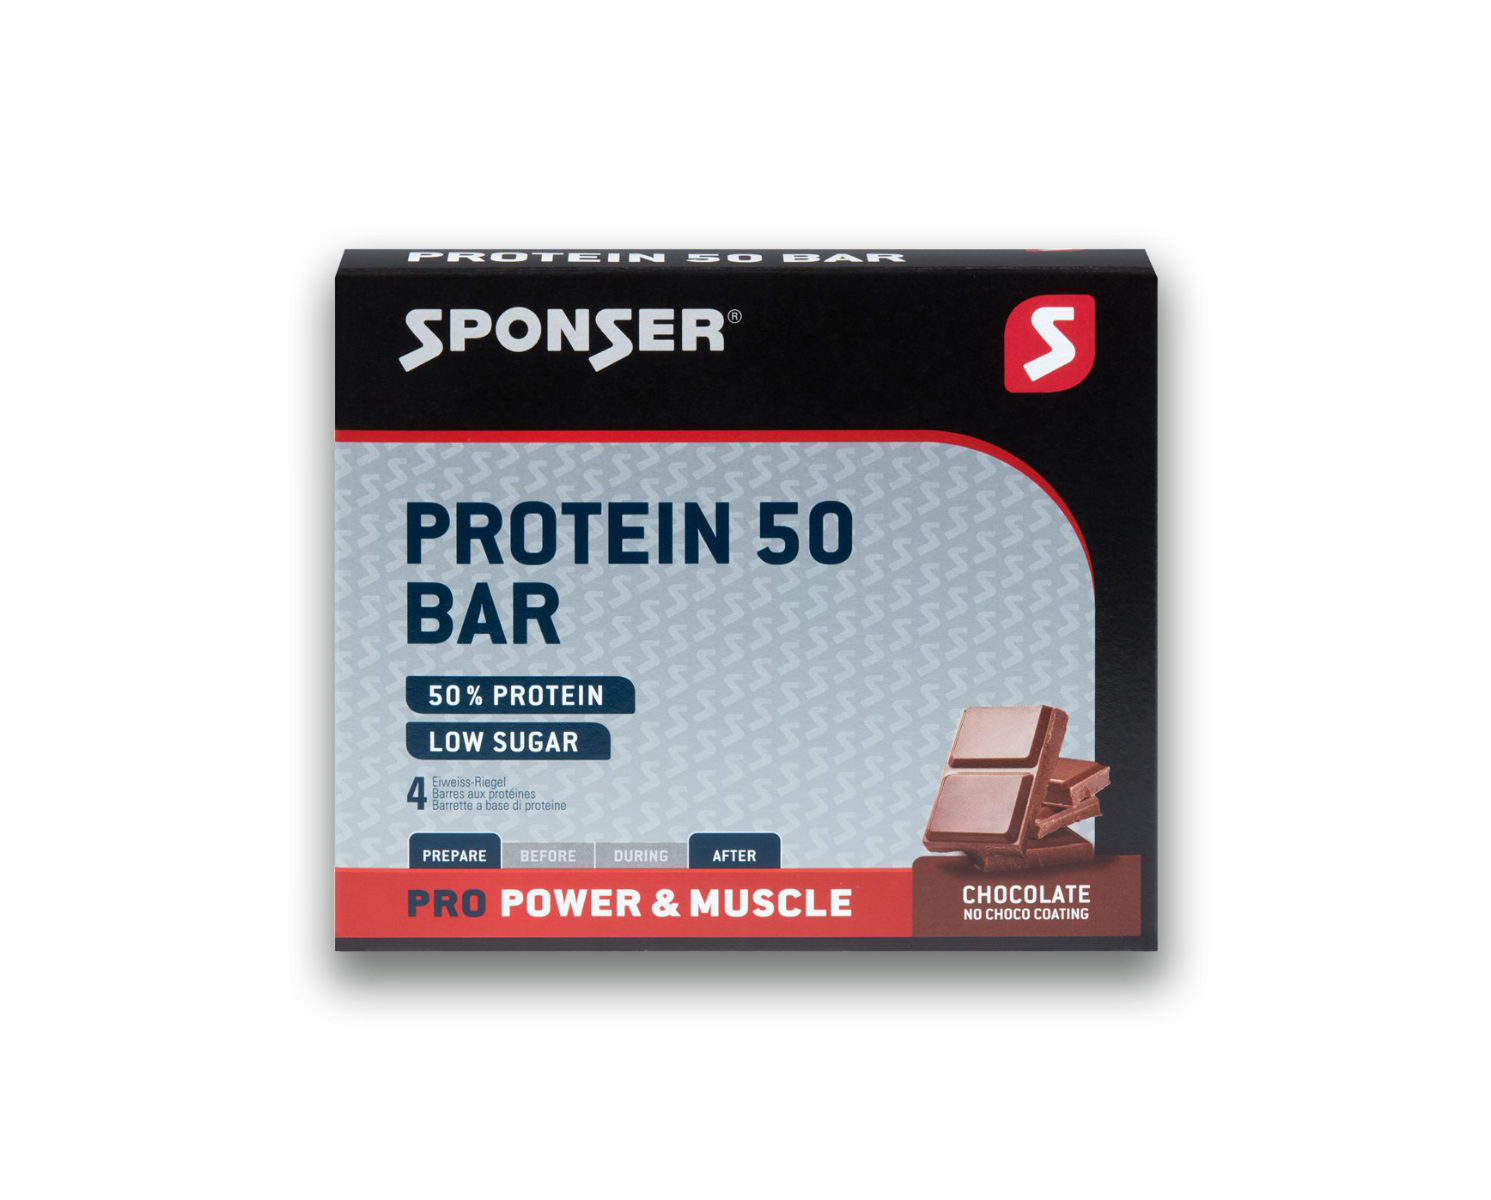 Protein 50 Bar Chocolate 4 x 50 g - MHD 7.2019